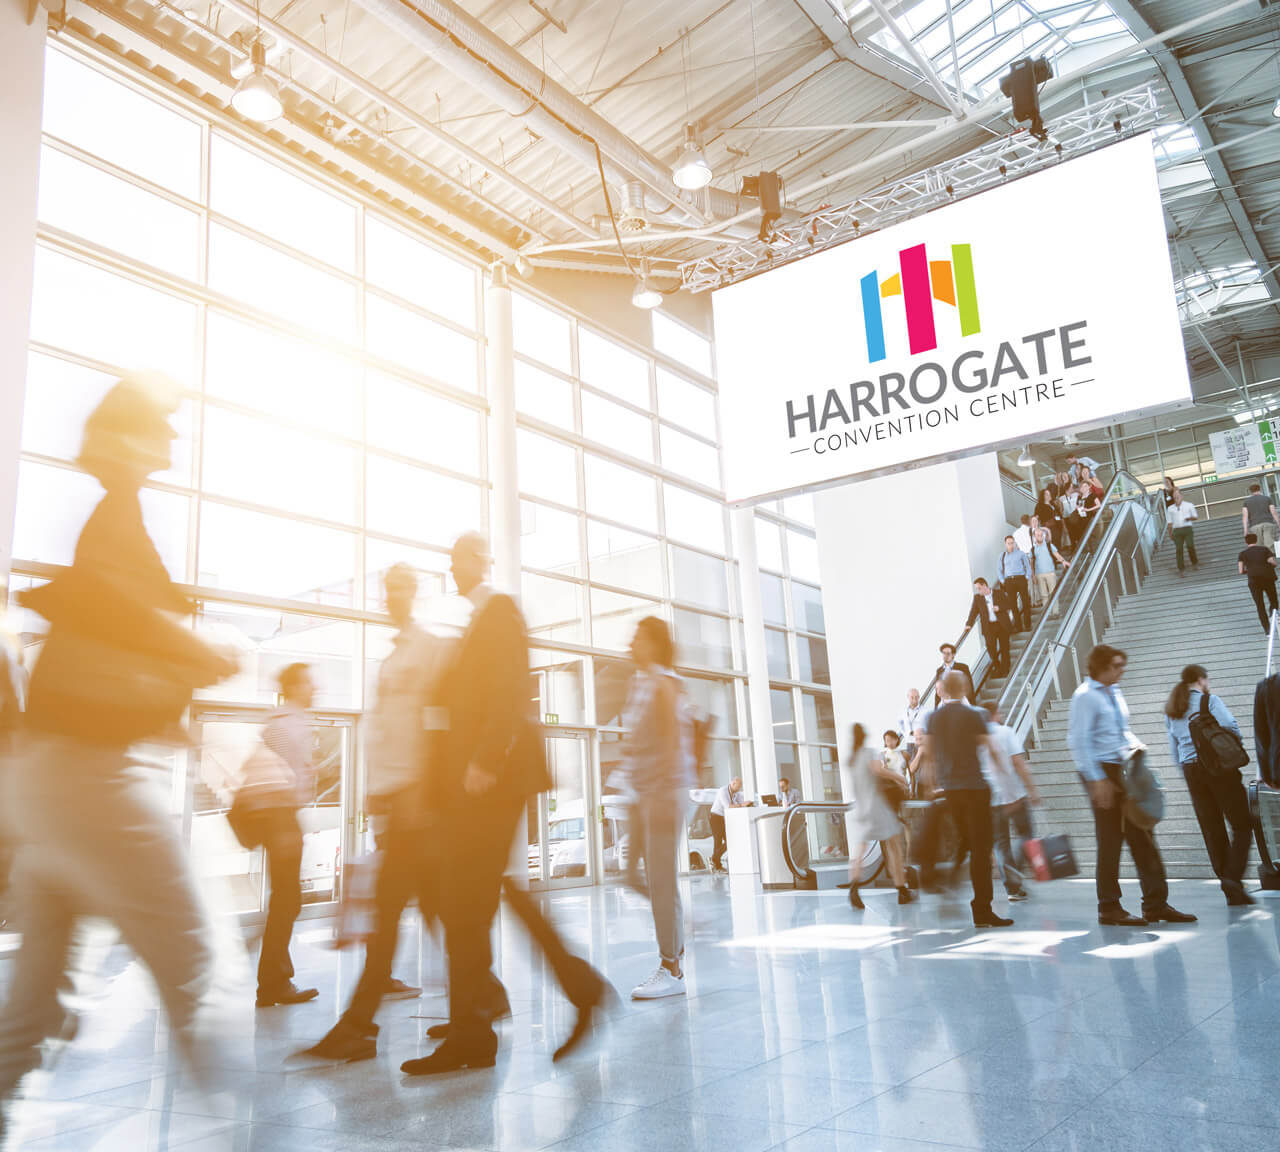 tig harrogate convention center logo design